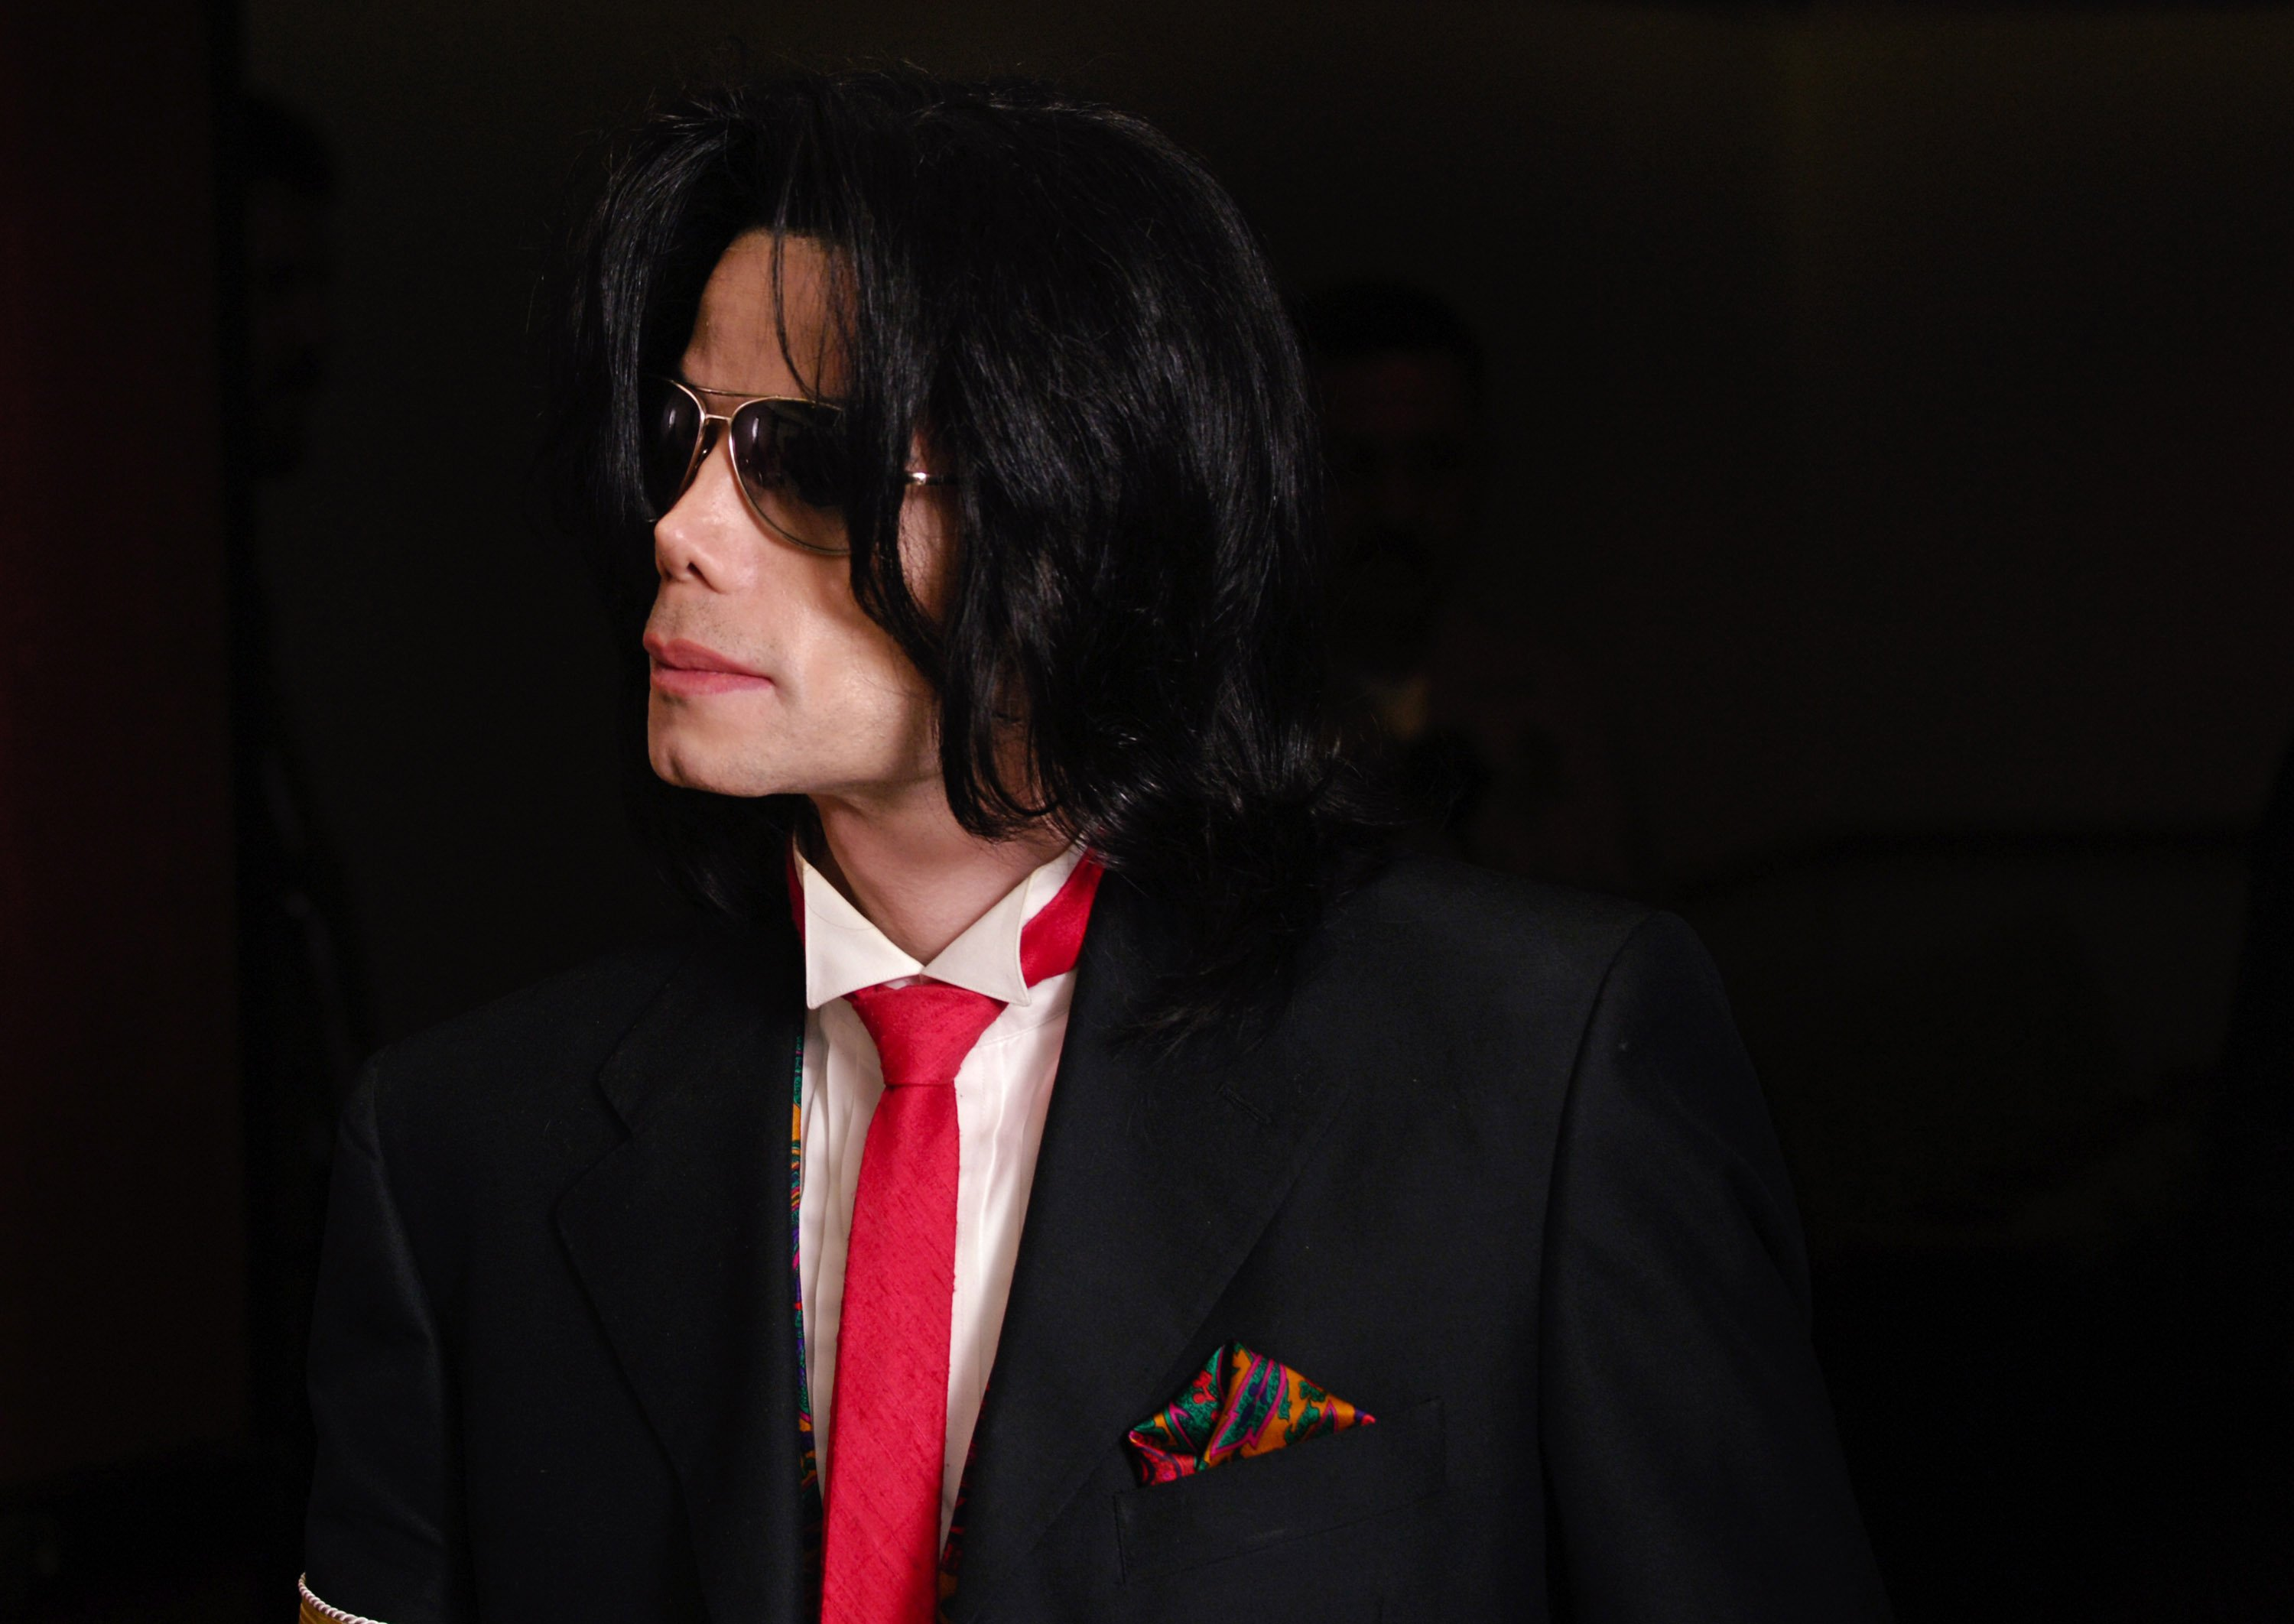 Michael Jackson leaves the courtroom after his child molestation trial at the Santa Barbara County Courthouse May 27, 2005. | Photo: GettyImages